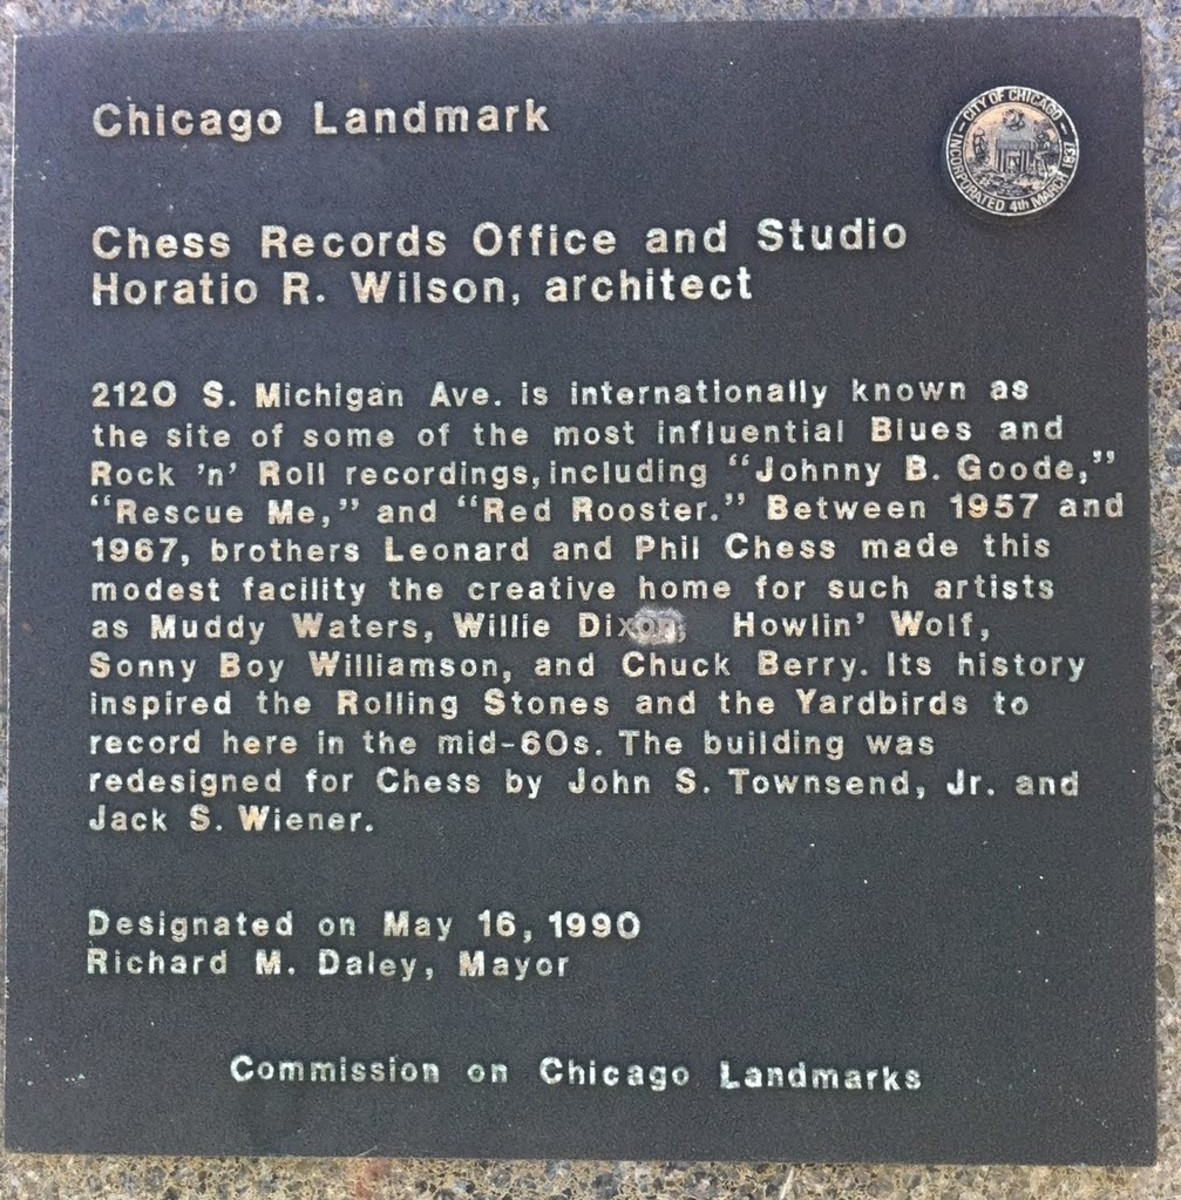 Landmark plaque in front of 2120 S. Michigan Avenue.